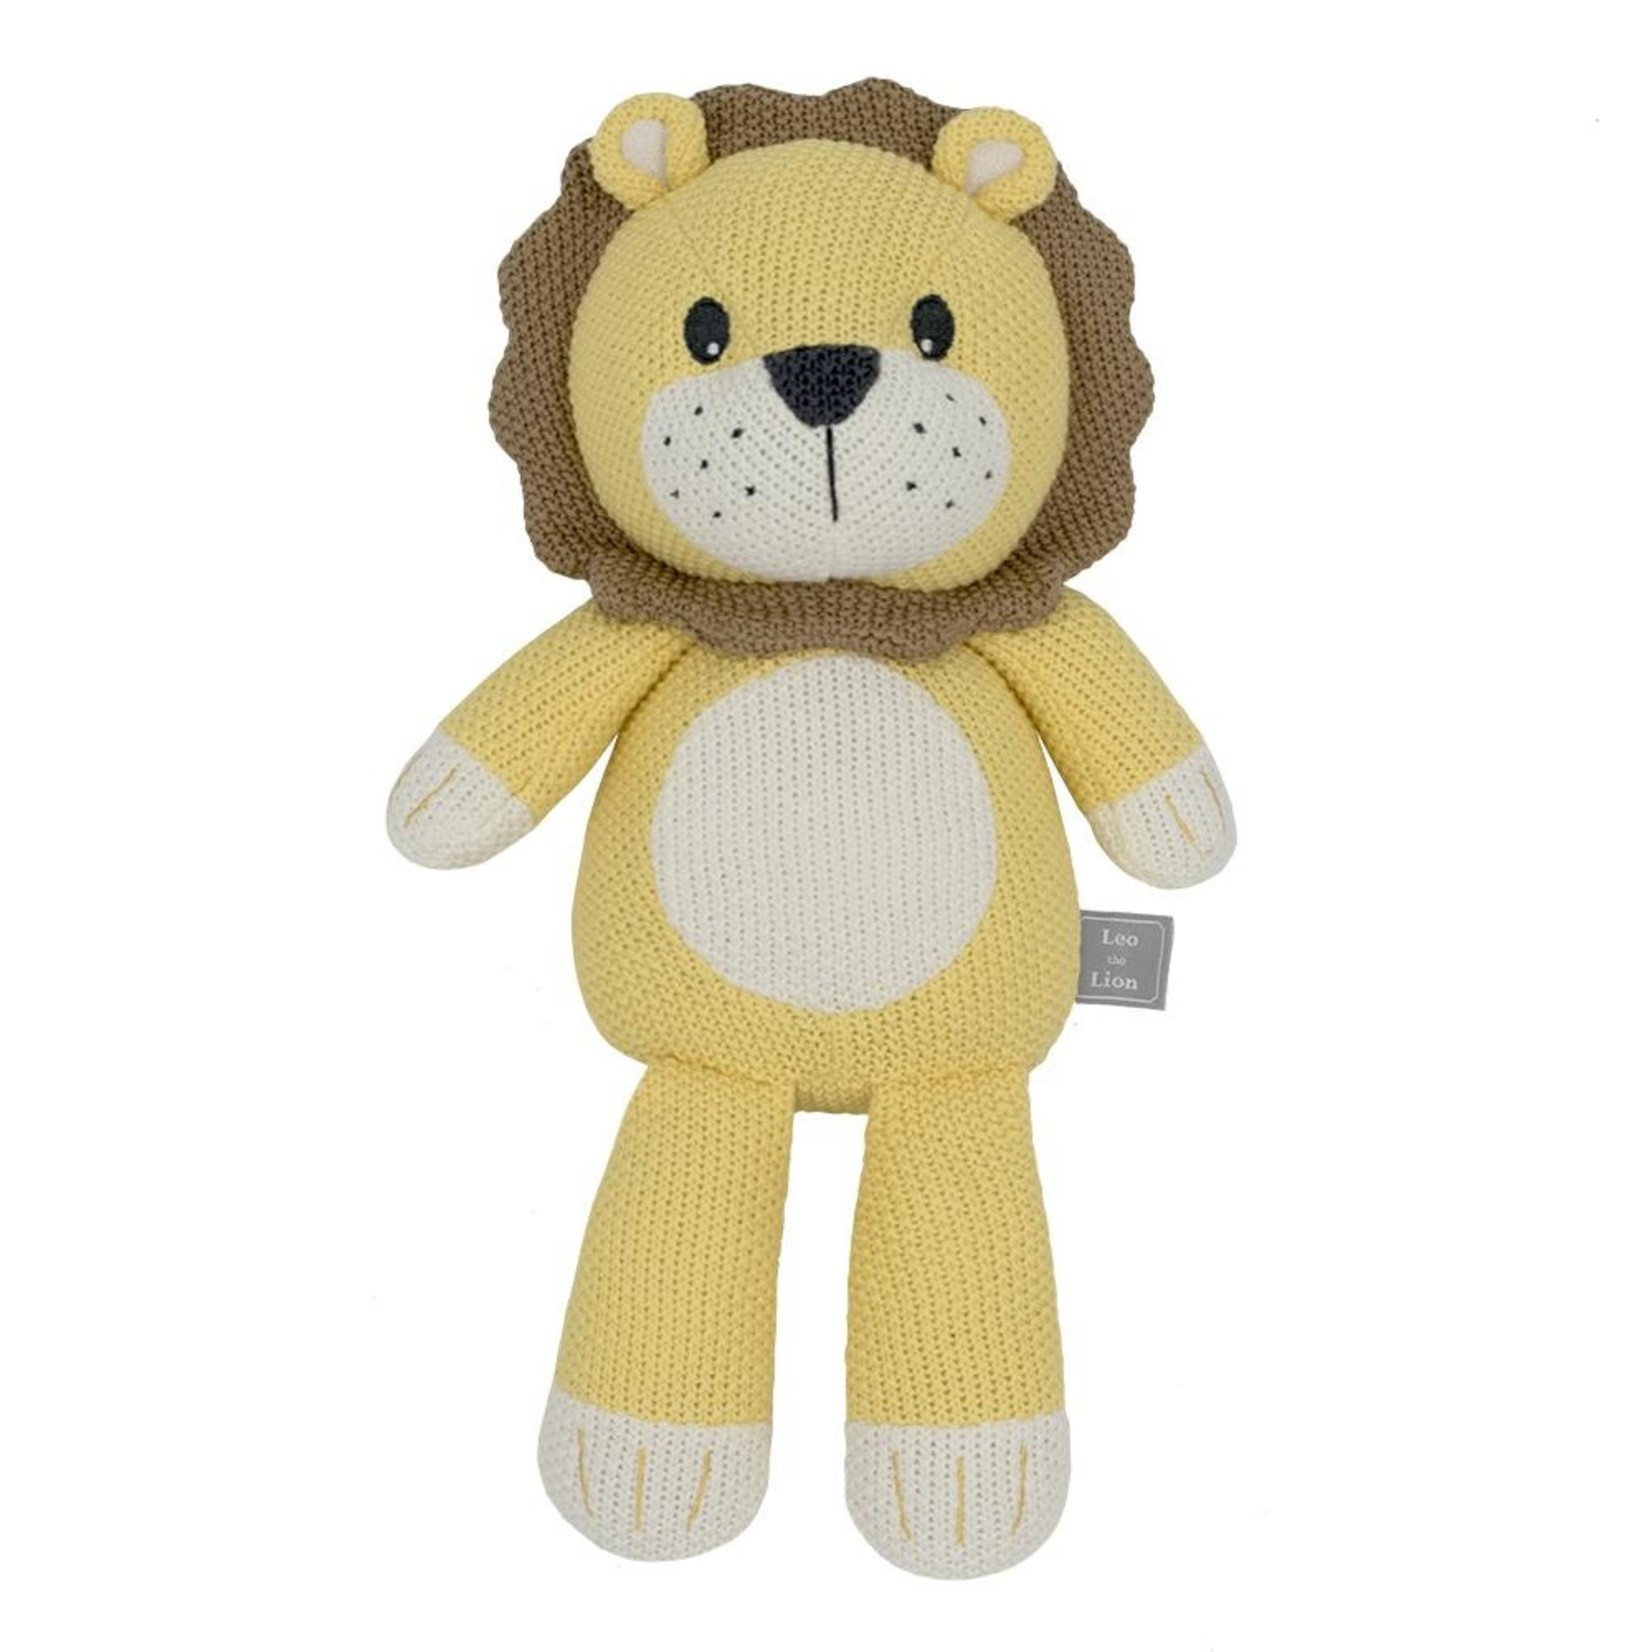 Living Textiles Living Textiles Whimsical Toy - Leo the Lion